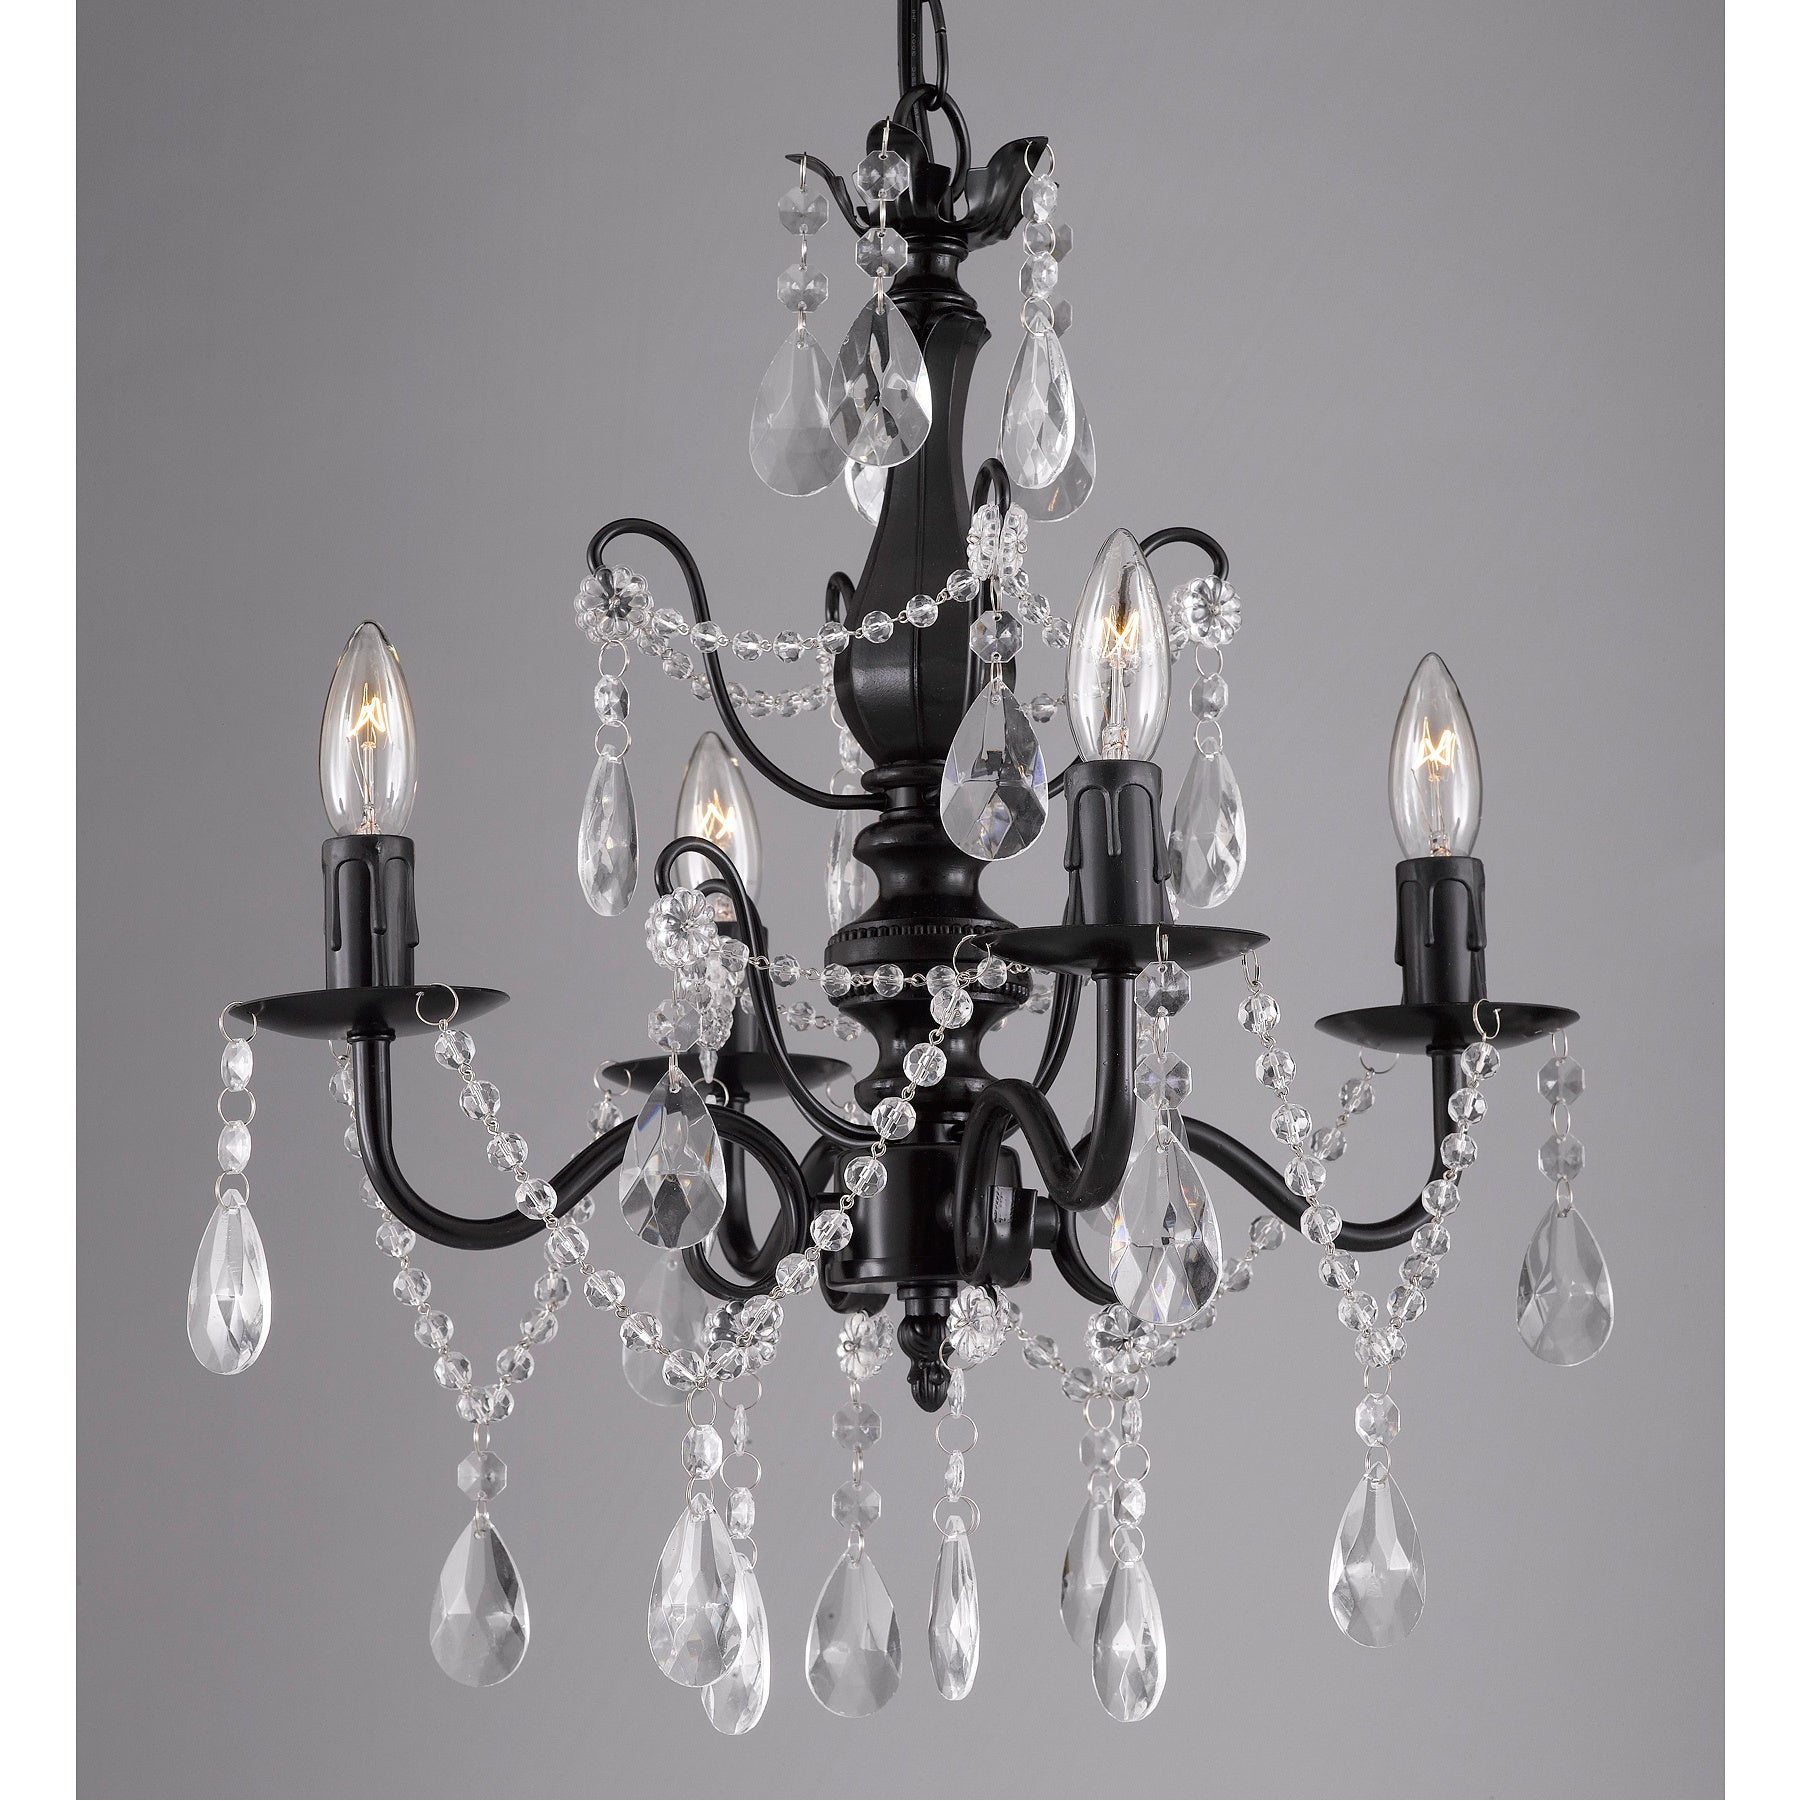 lighting wrought crystal foyer grand by chandelier large old and world glow chandeliers iron product